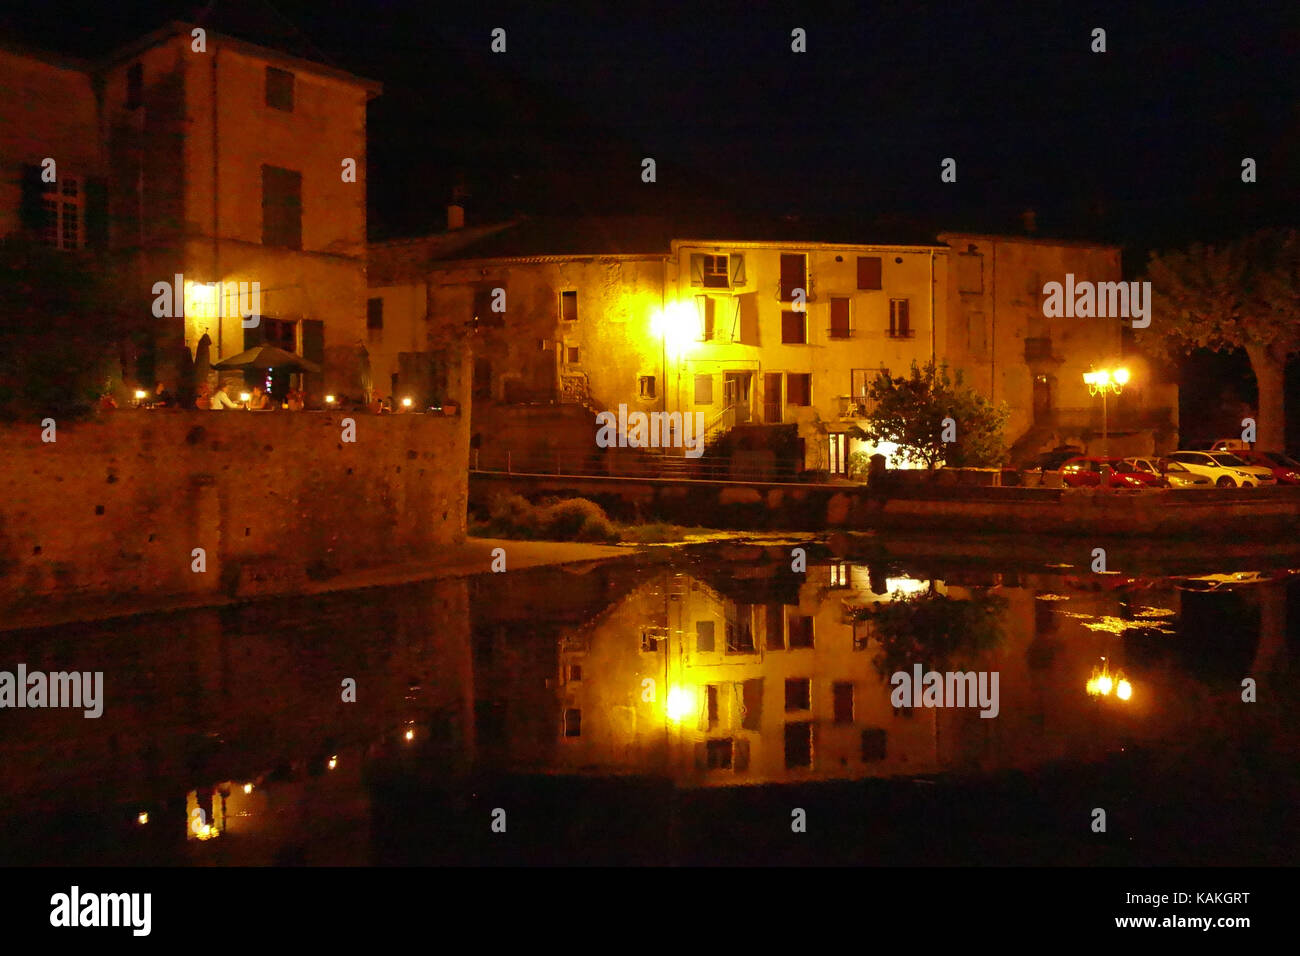 Chateau de Lunas, historic former chateau now a restaurant overlooking river in small town of Lunas near Lodeve - Stock Image